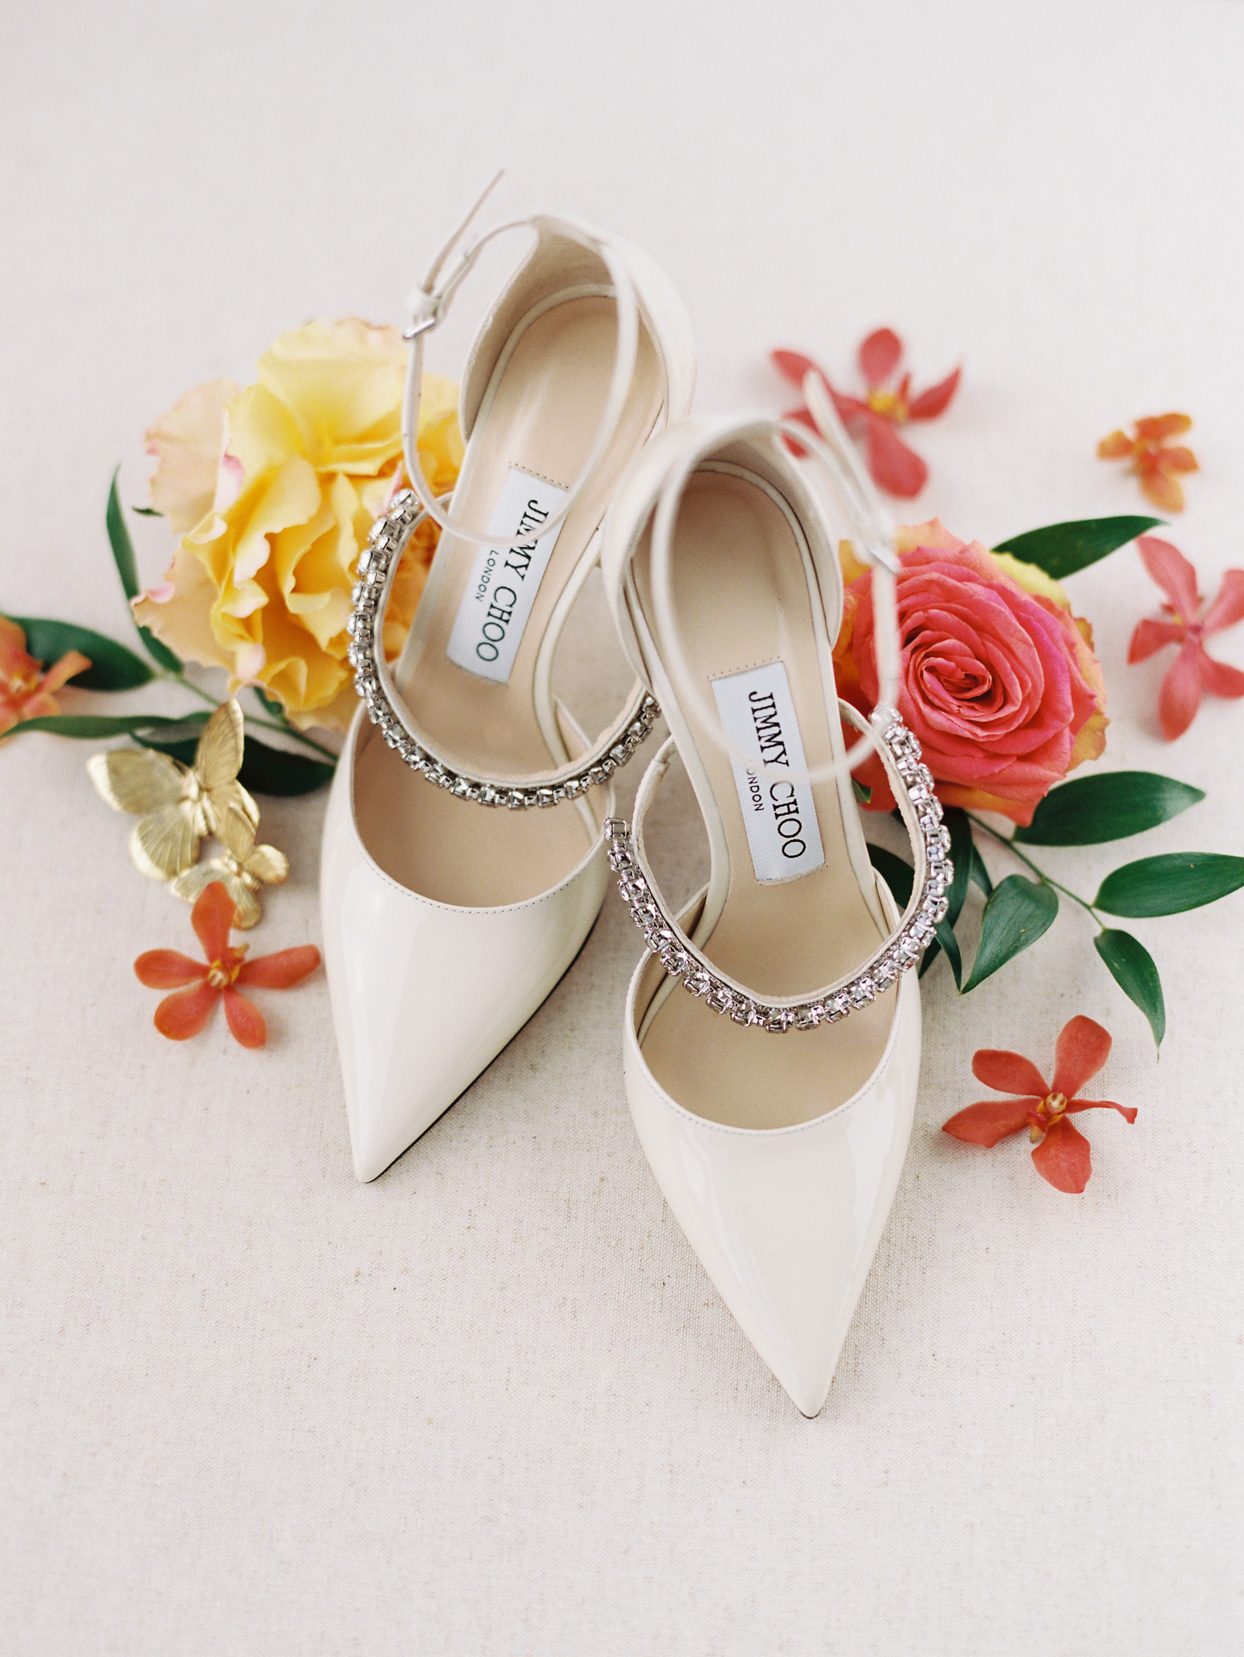 elegant white wedding shoes with diamonds and flowers